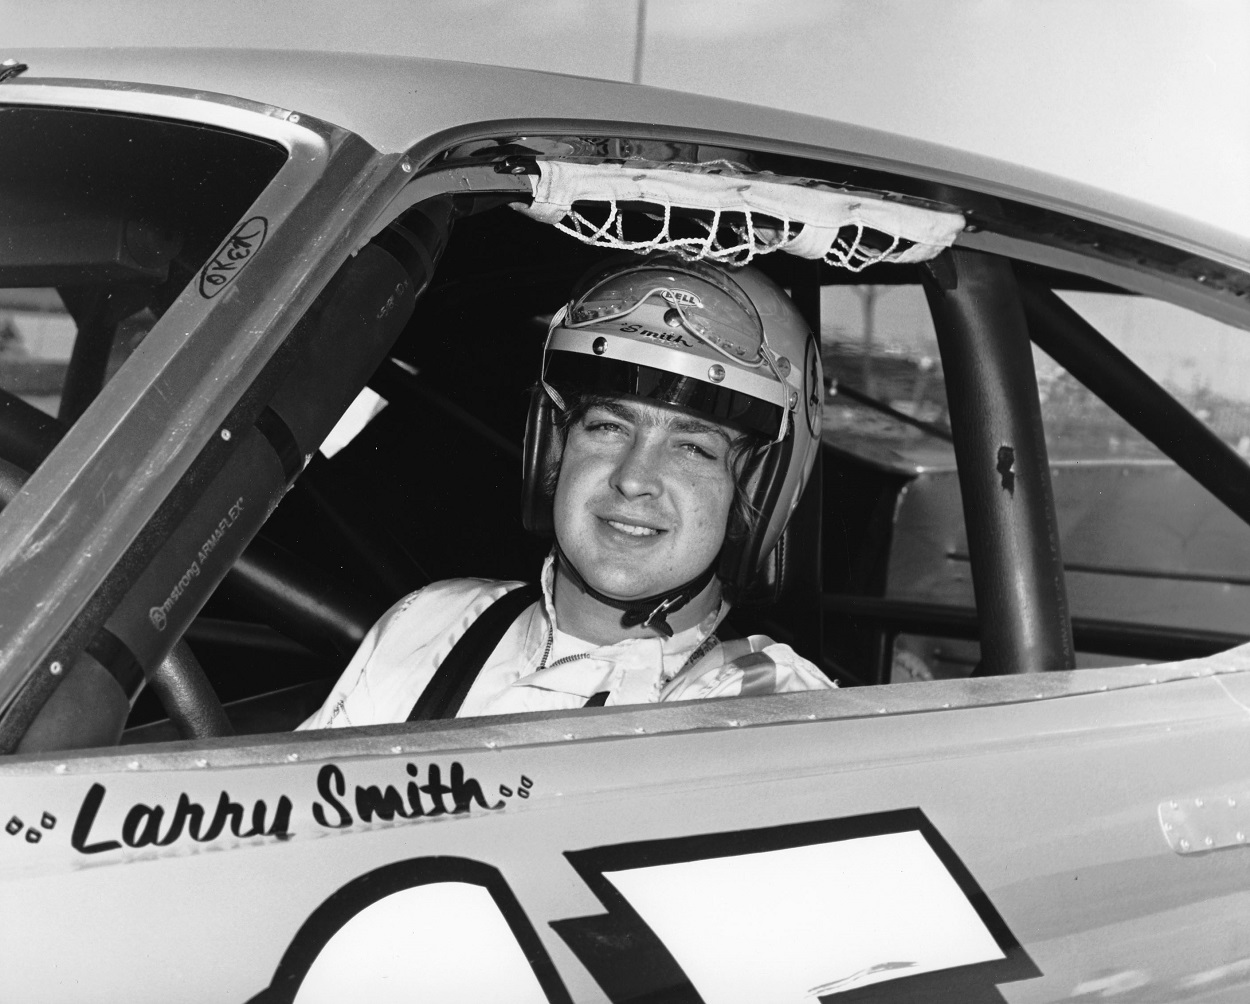 Larry Smith Was Tragically the First Victim of a Fatal Crash at Talladega Mere Months After Winning NASCAR Rookie of the Year